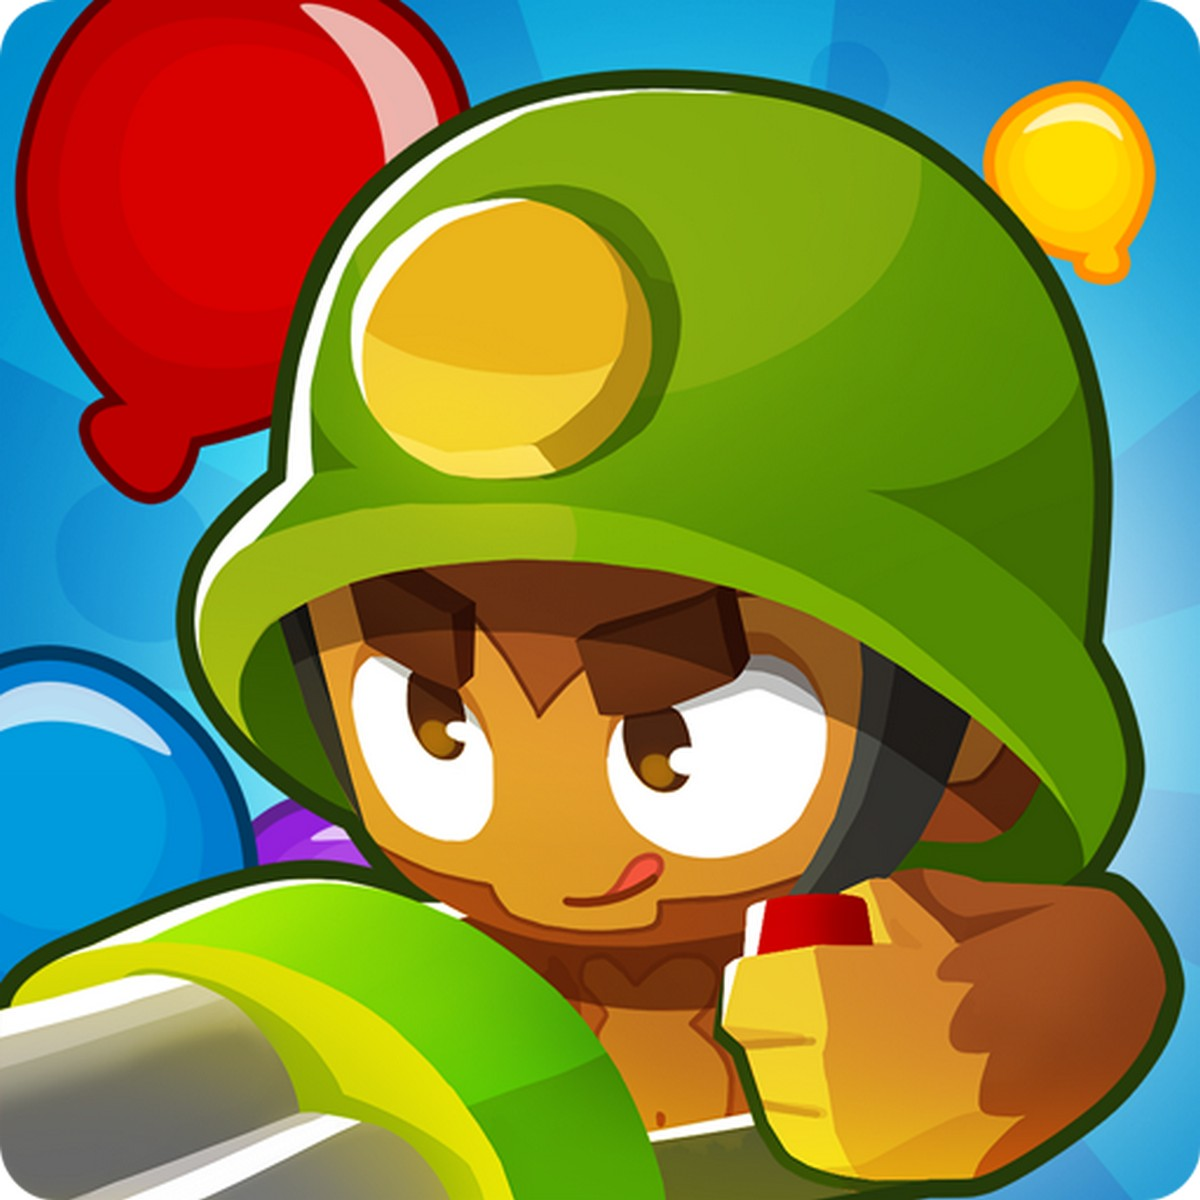 Bloons TD 6 APK MOD v22.1 (Dinero infinito) 1